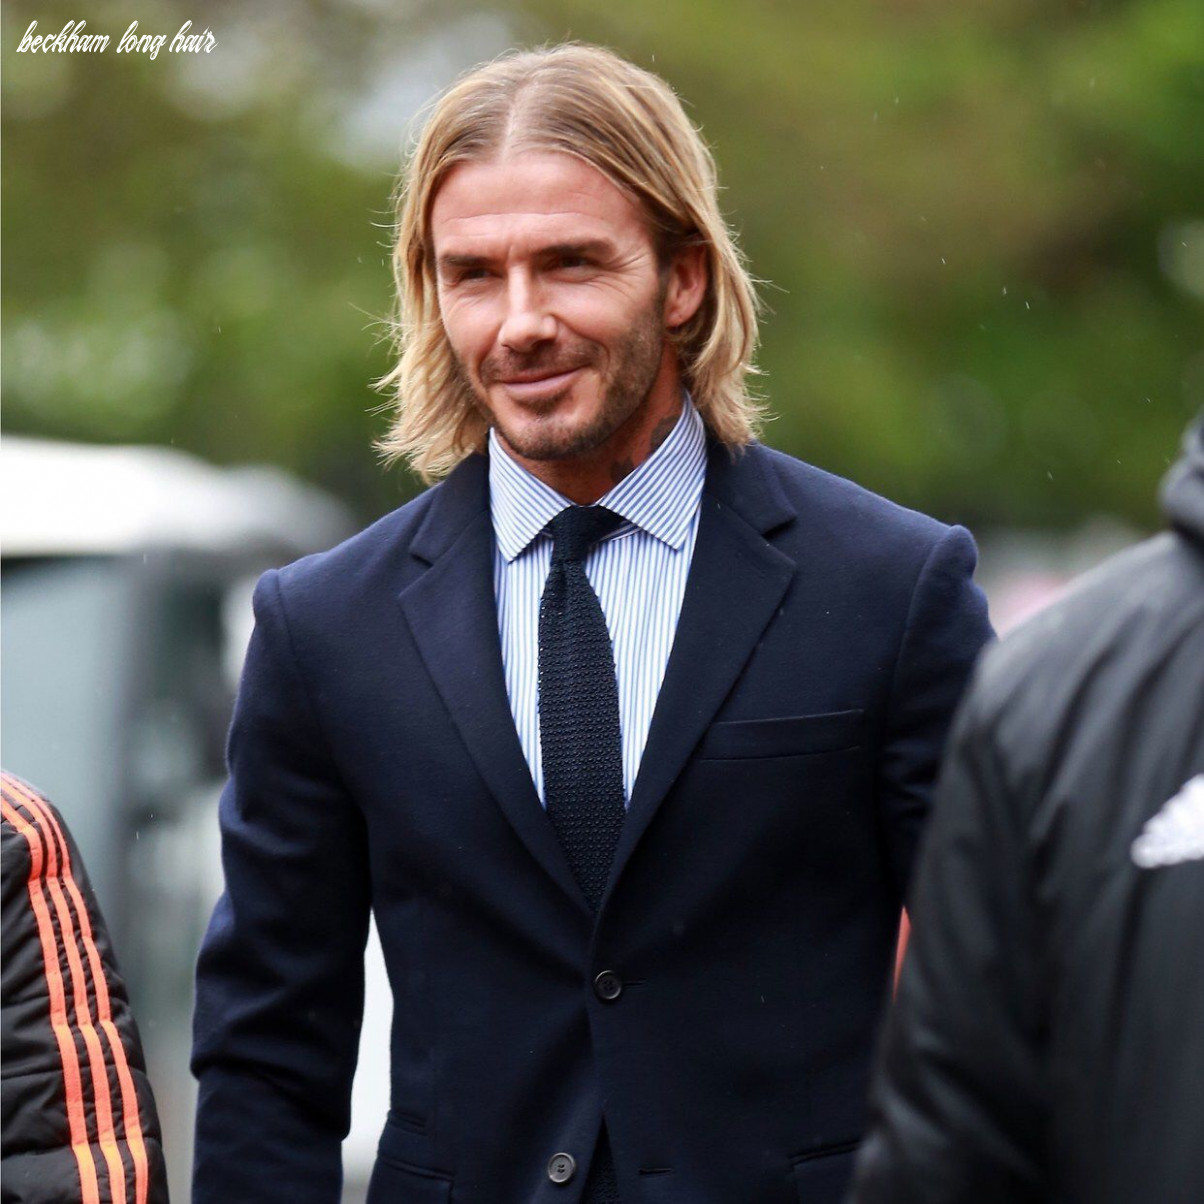 10 Beckham Long Hair - Undercut Hairstyle